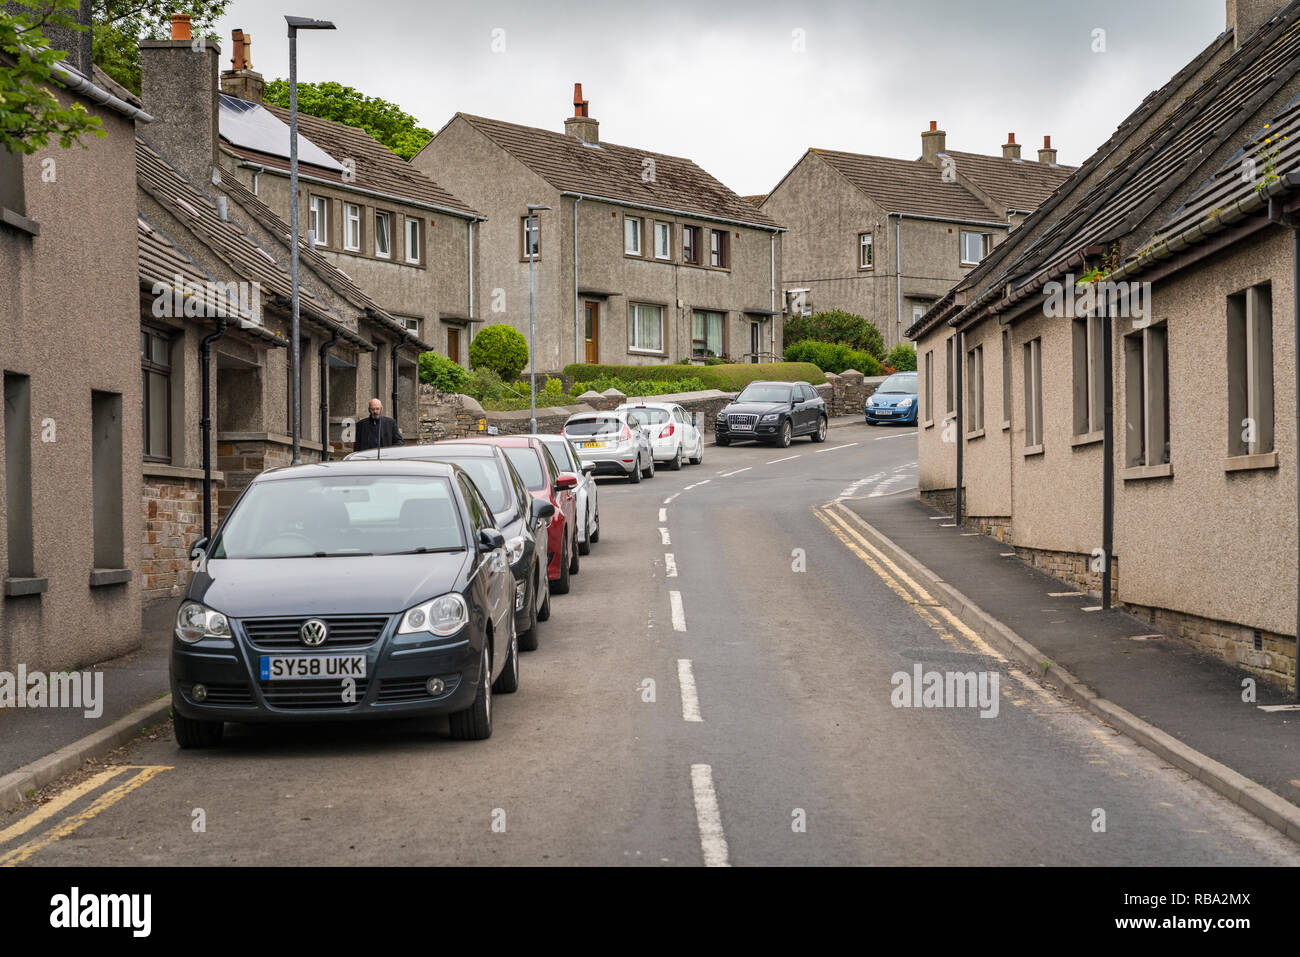 A narrow street with cars in Kirkwall, Orkney, Scotland, United Kingdom, Europe. - Stock Image